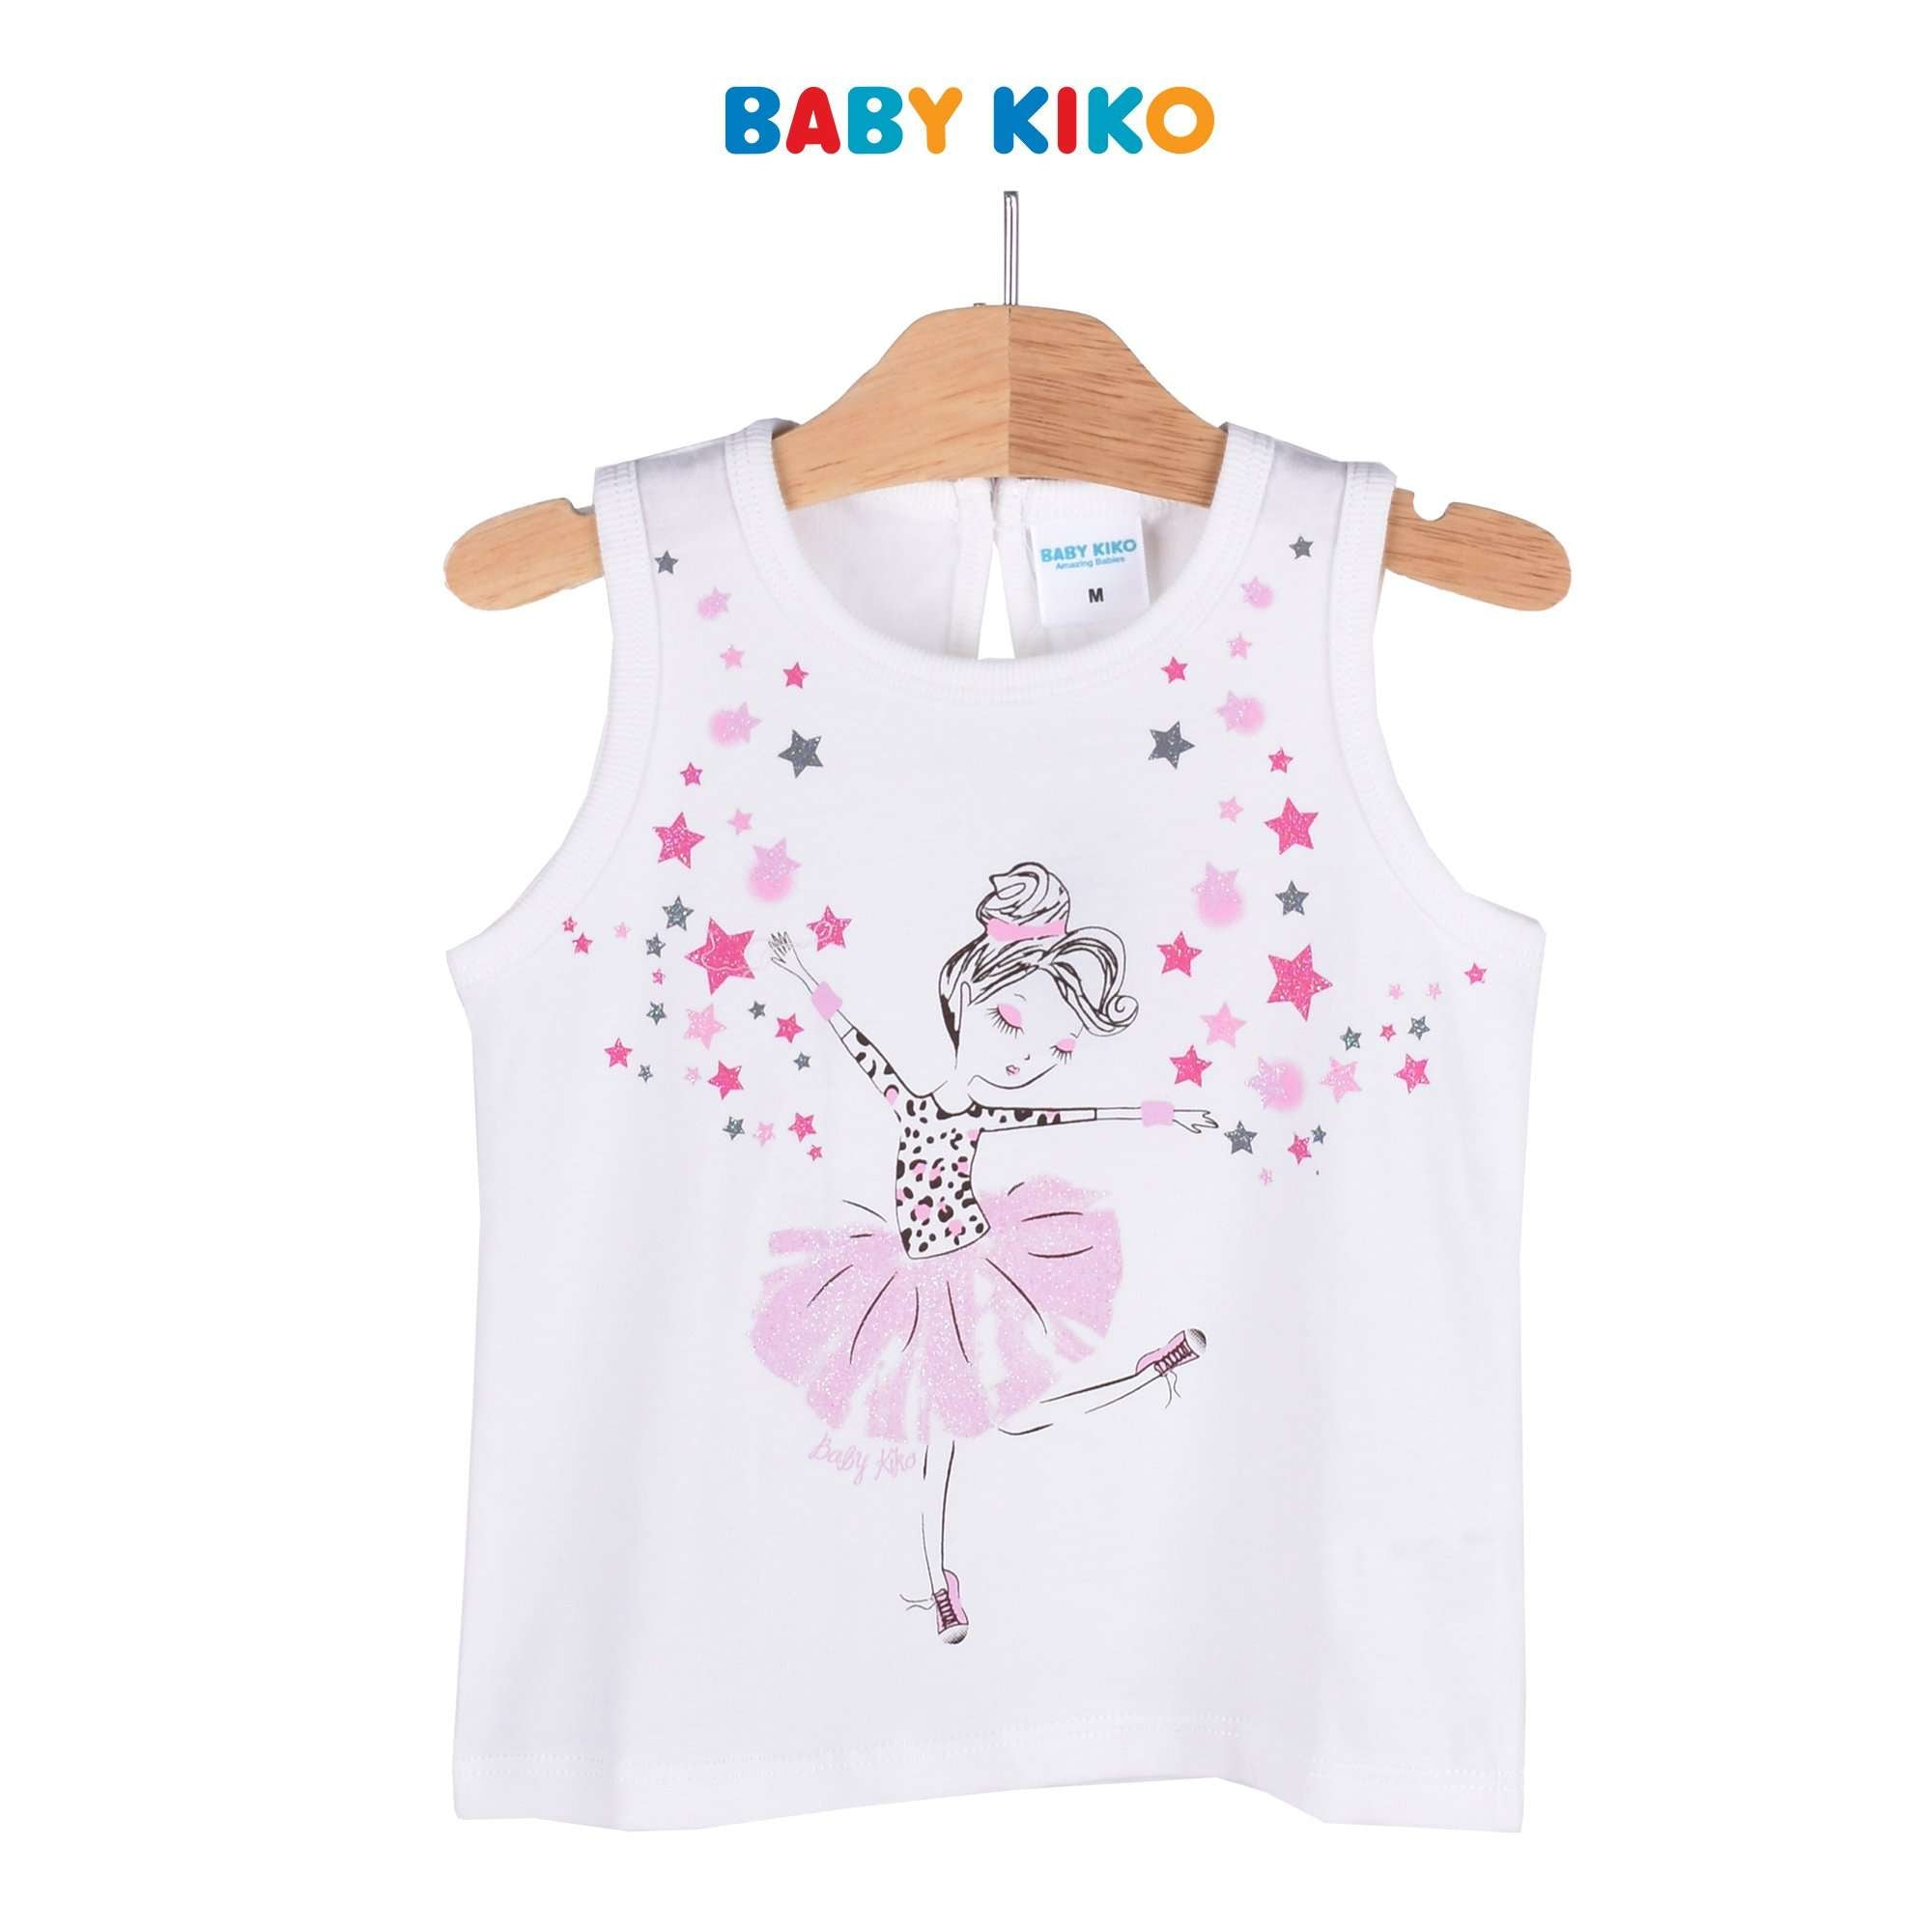 Baby KIKO Toddler Girl Sleeveless Tee - Off White 335085-101 : Buy Baby KIKO online at CMG.MY